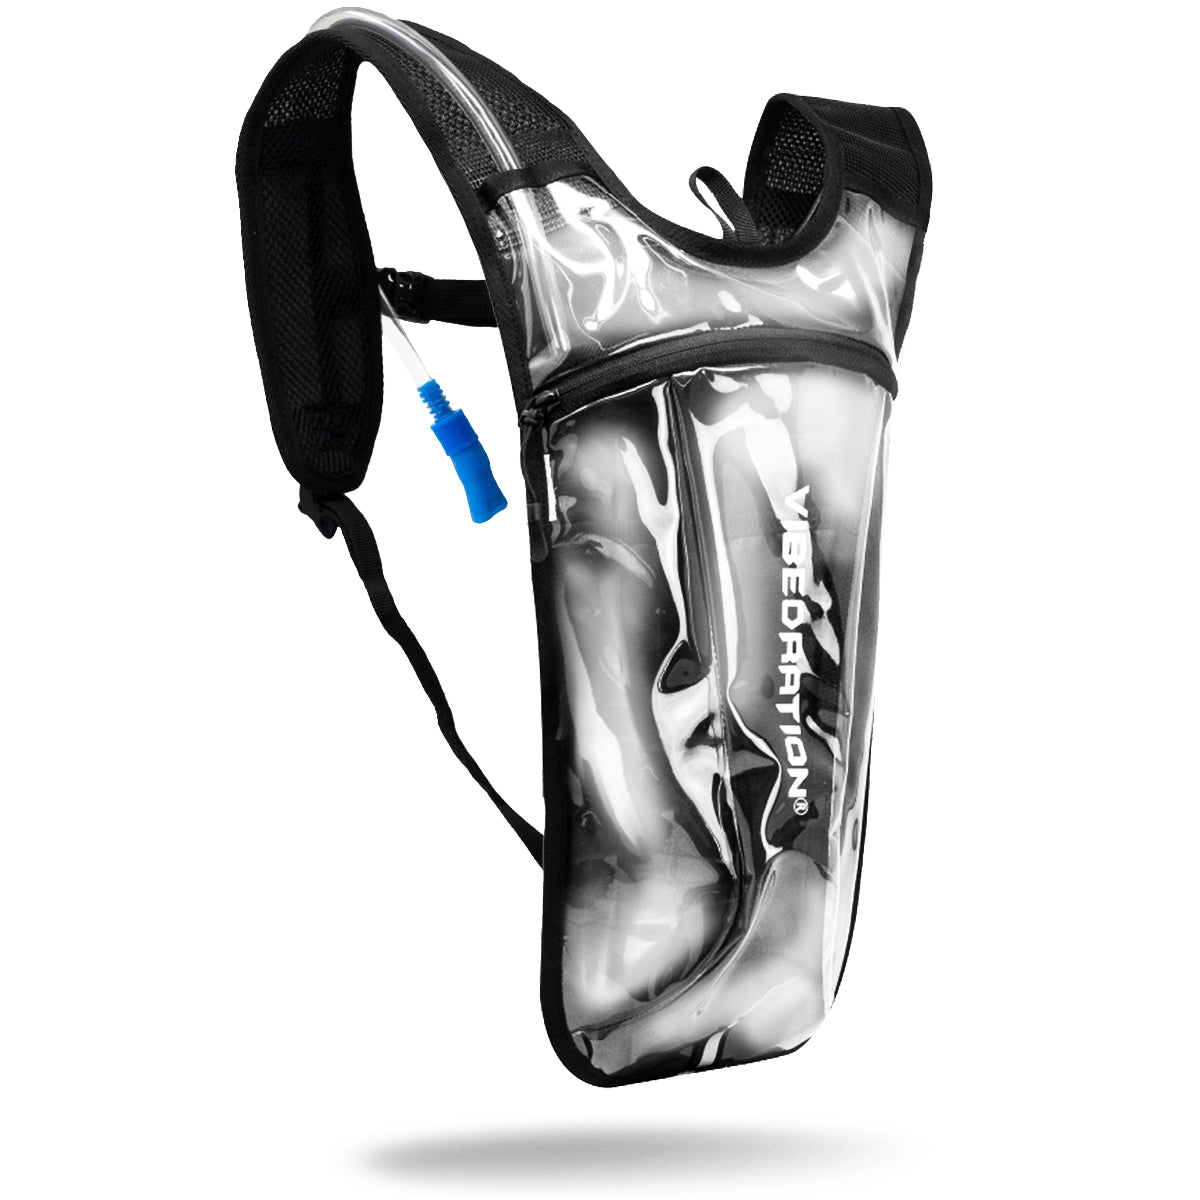 Clear hydration pack with 2 liter water bag